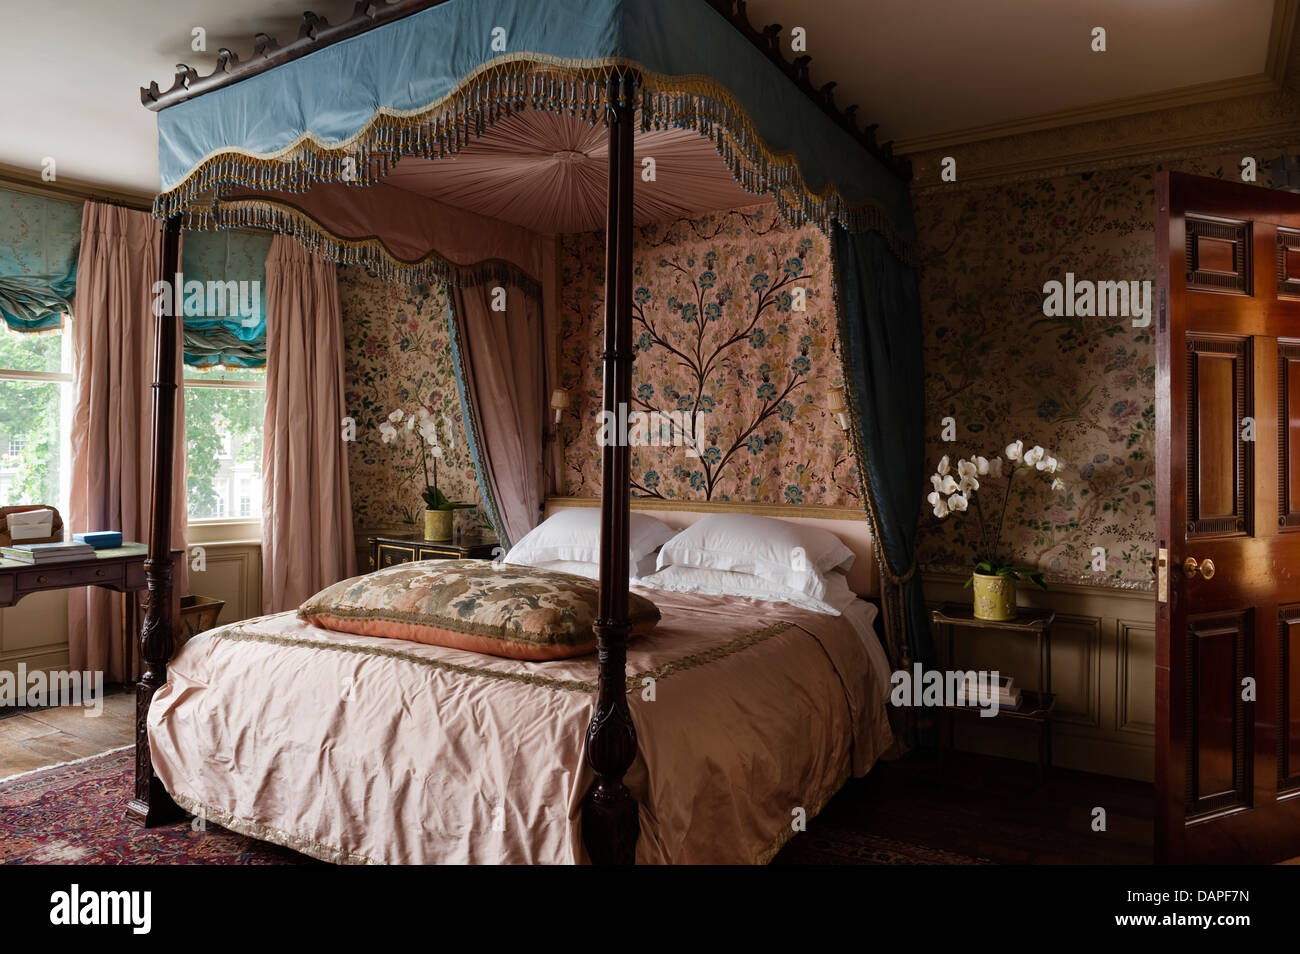 Four poster bed in Georgian apartment in London, interior designer Alvise Orsini UK - Stock Image